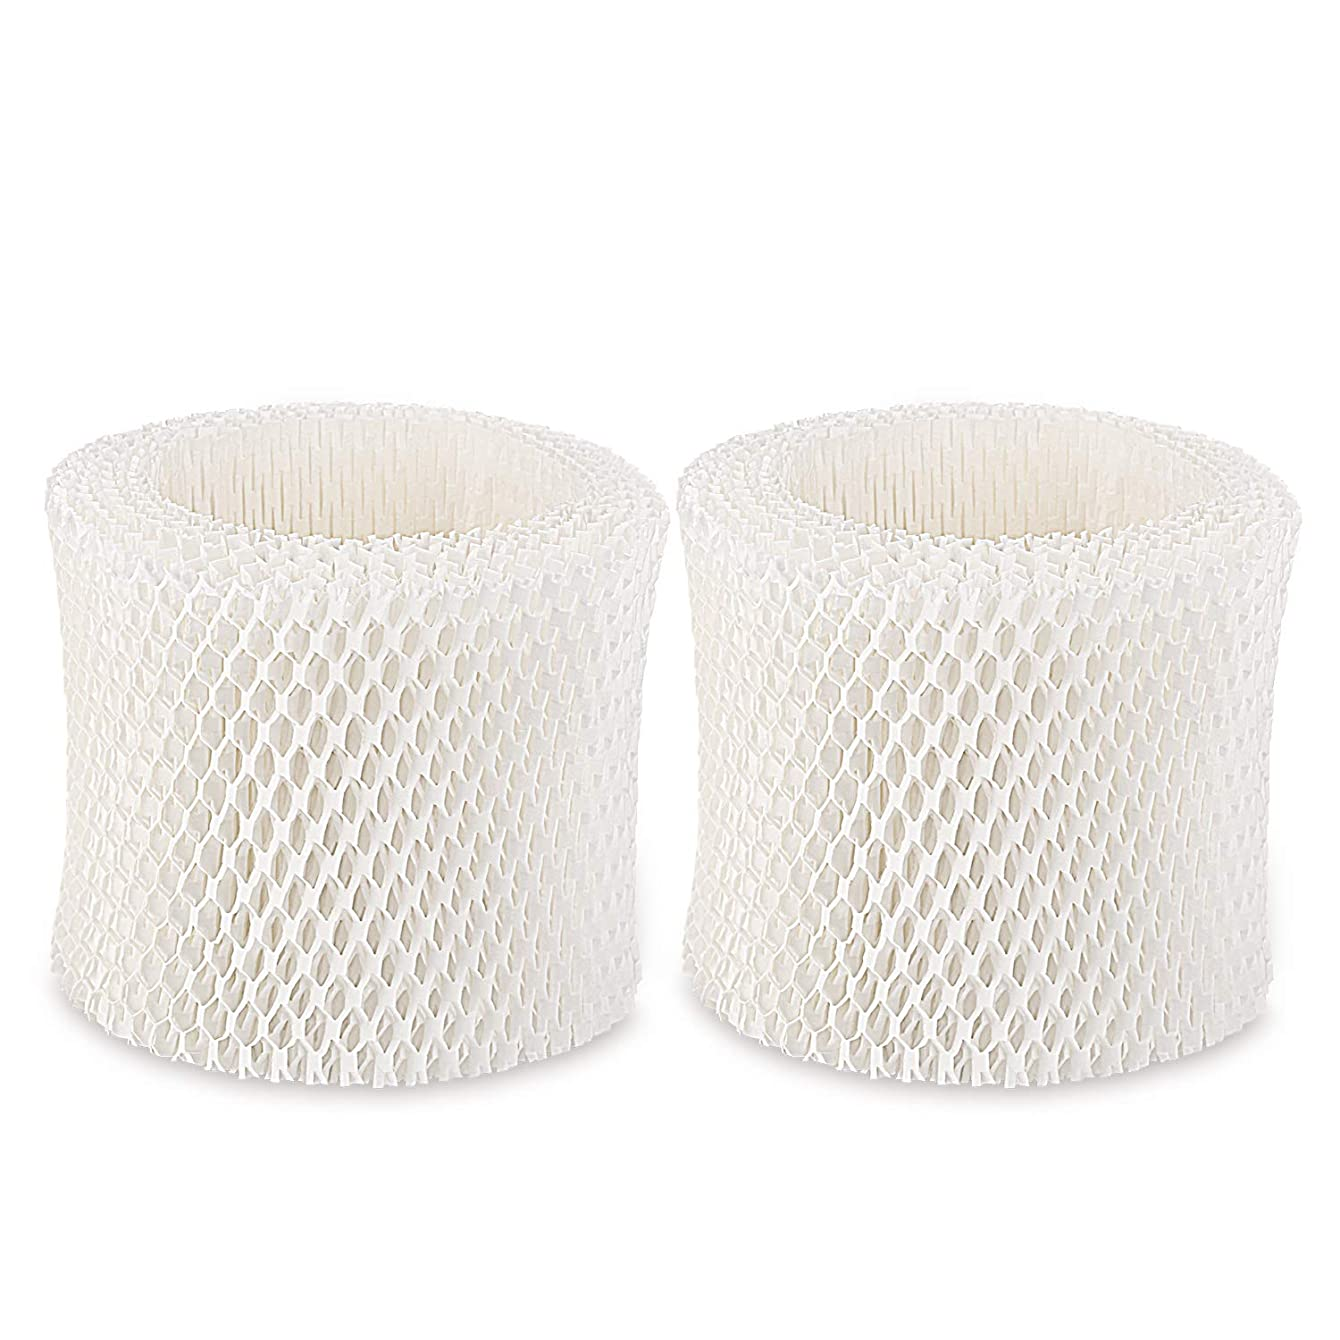 isinlive 2-Pack Replacement Filter A for Honeywell HAC-504AW Humidifier